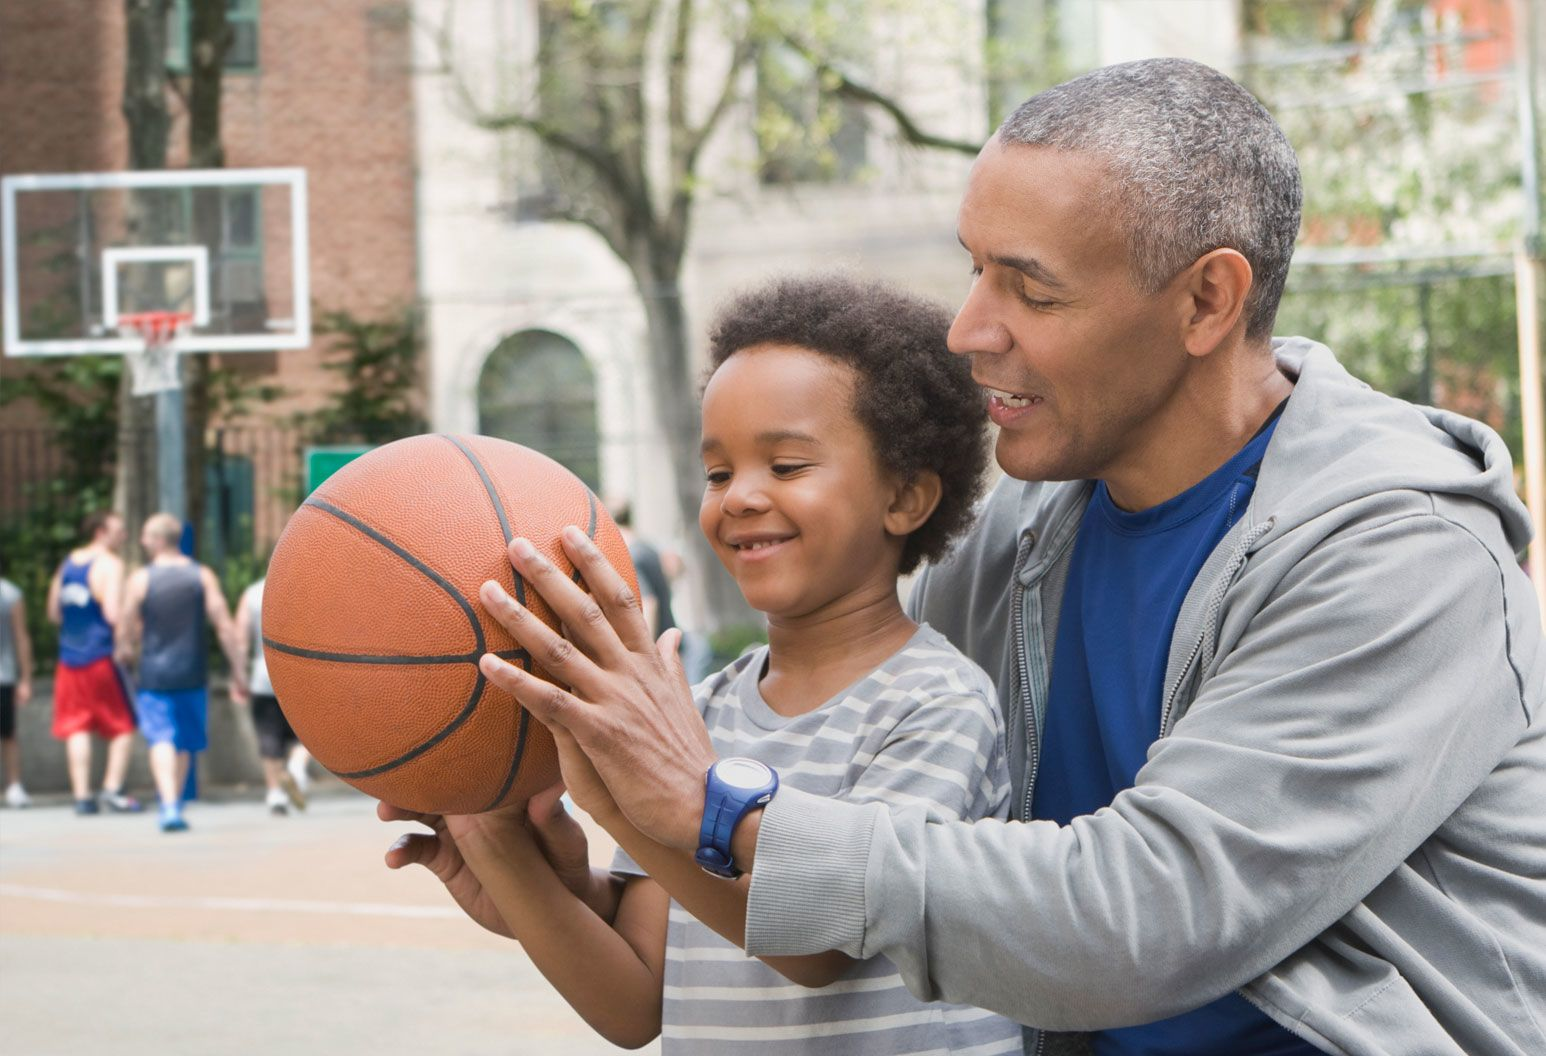 A middle-aged man and child are at a basketball court at the park, holding the ball together and smiling.